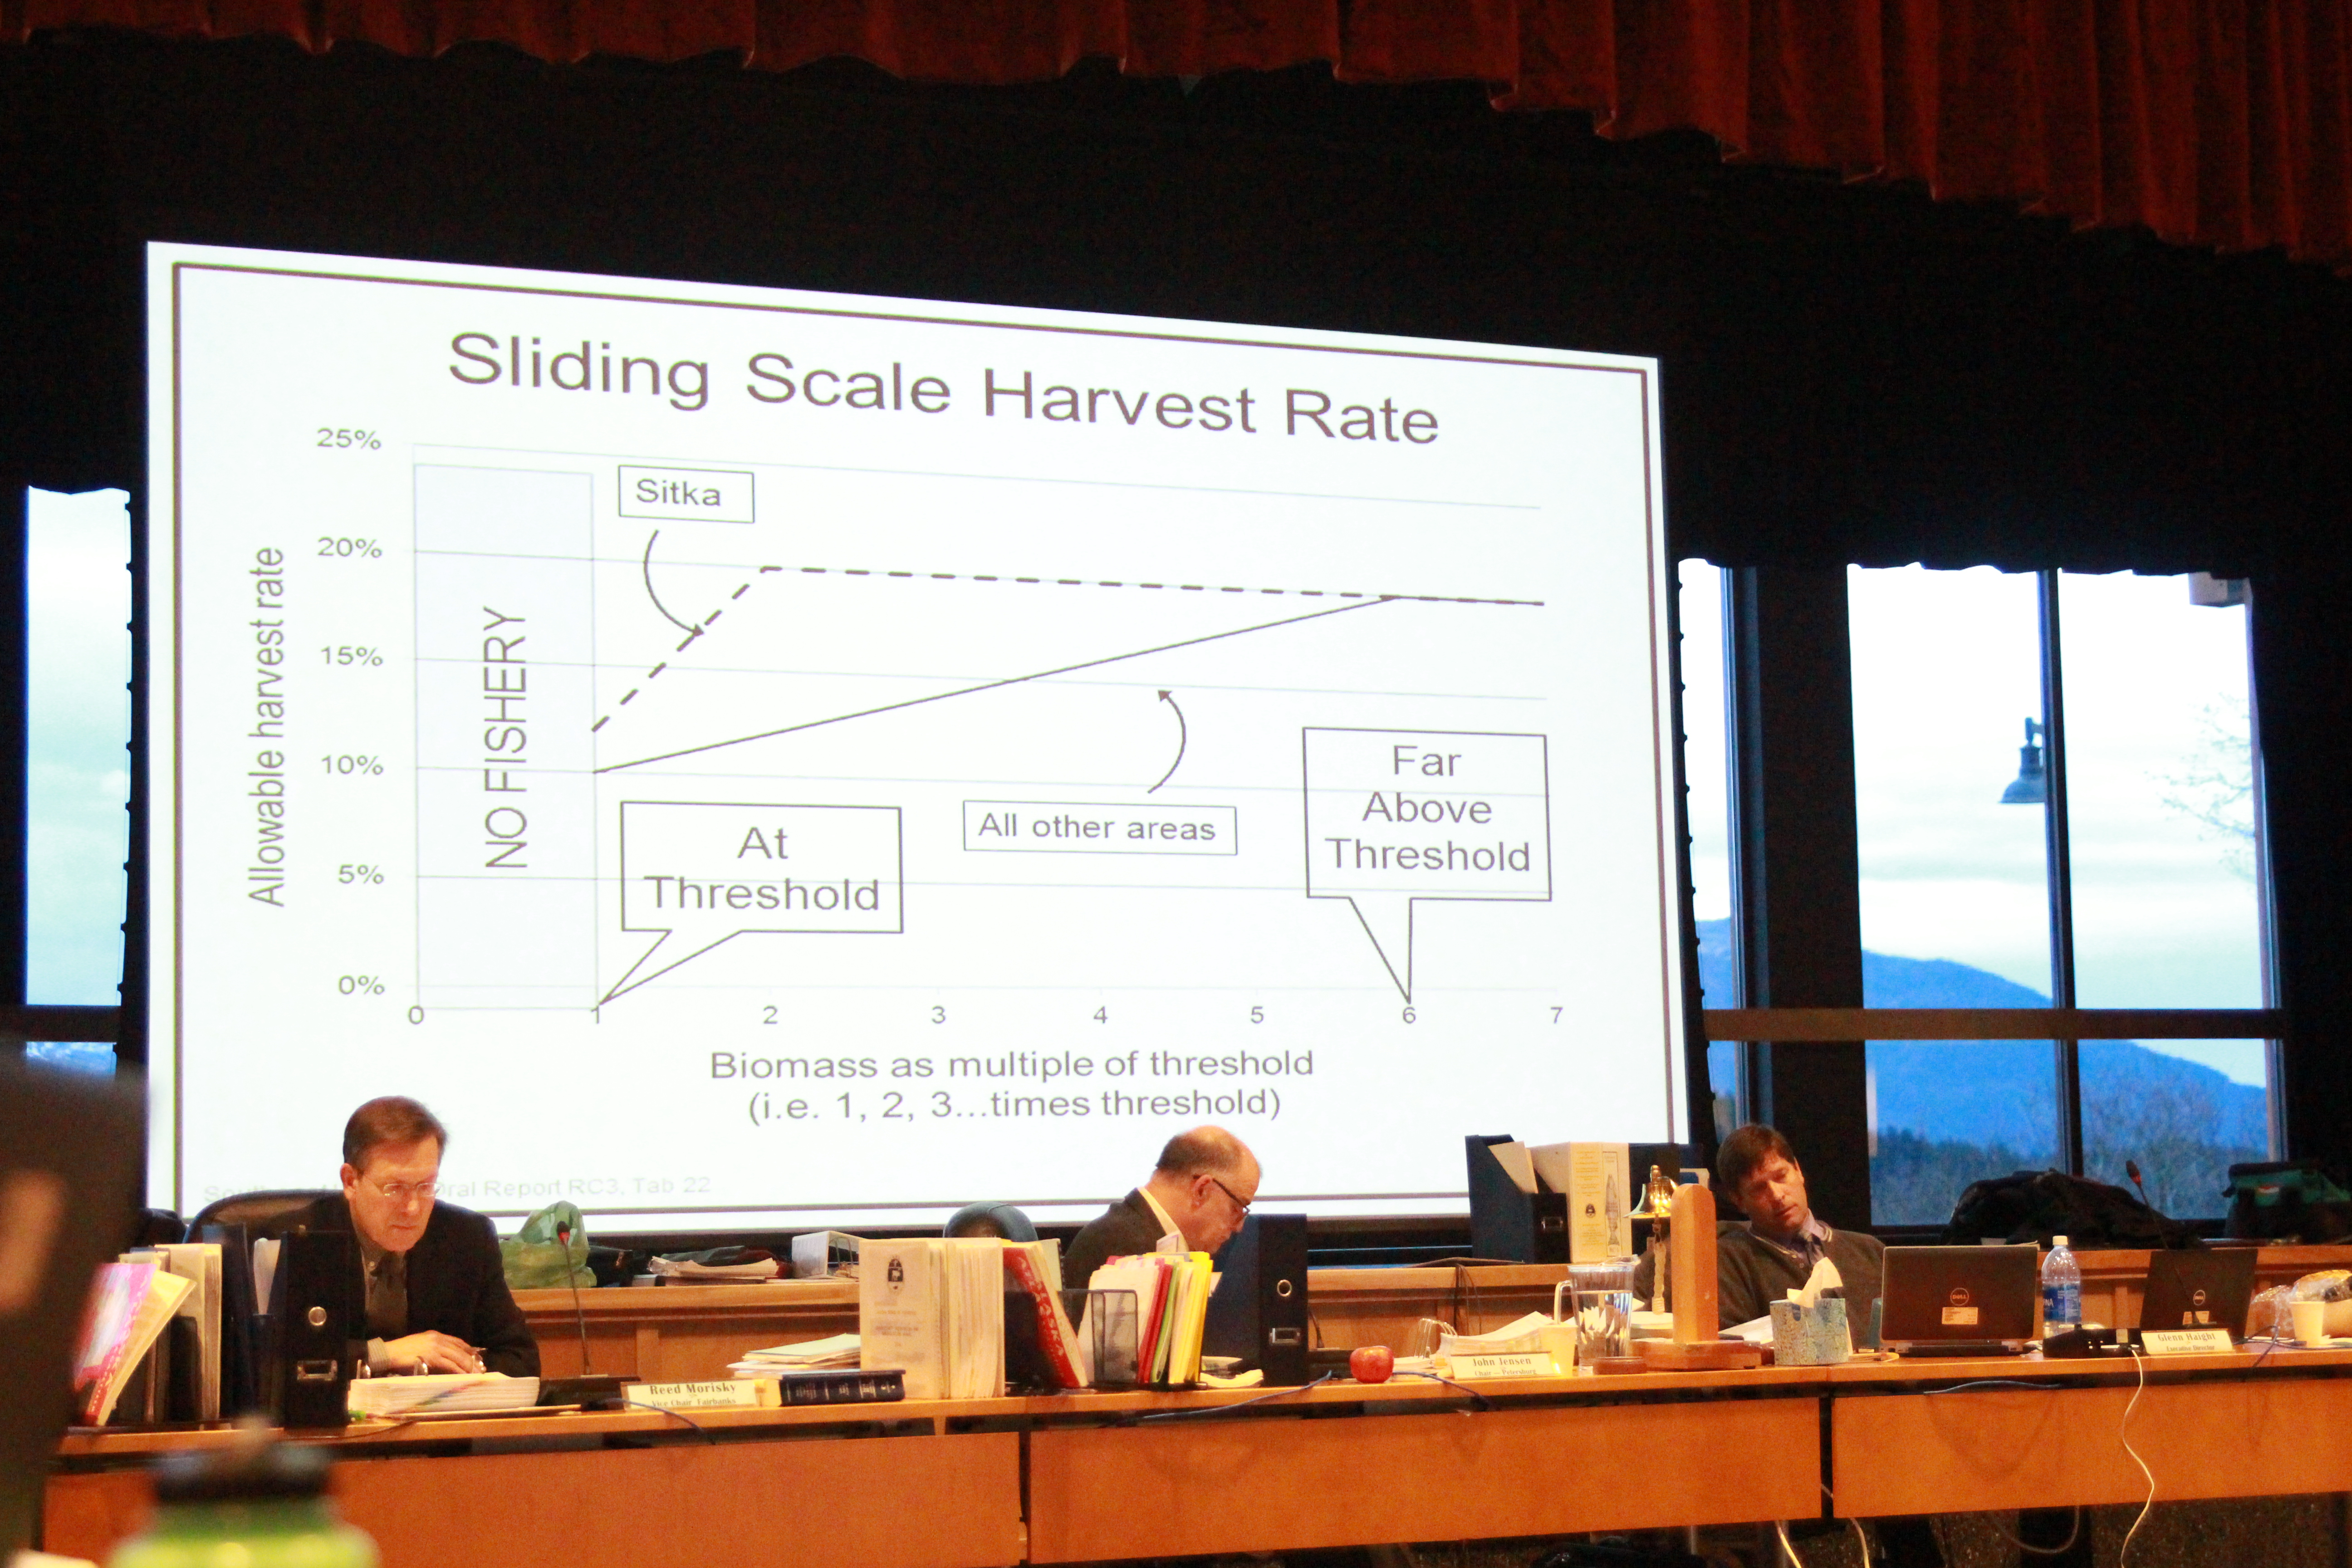 """The Sitka sac roe herring fishery operates just beyond the windows where the Board of Fish is seated. The industry wants the current management plan to stay in place, while a local cohort calling themselves the """"Herring Rock Water Protectors"""" has aligned with Sitka Tribe of Alaska for more conservative management. (Photo by Emily Kwong/KCAW)"""